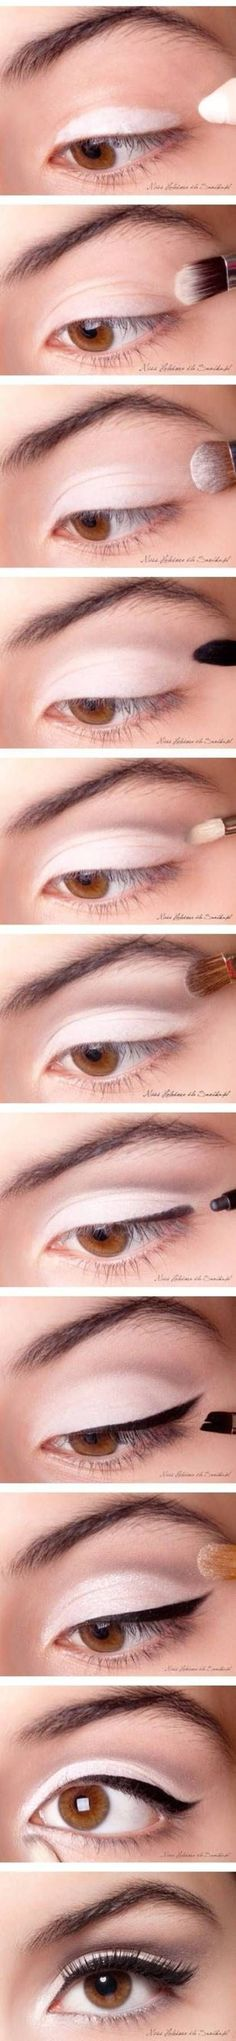 5 Tips on How to Apply Makeup in the Right Places [Makeup Tips]